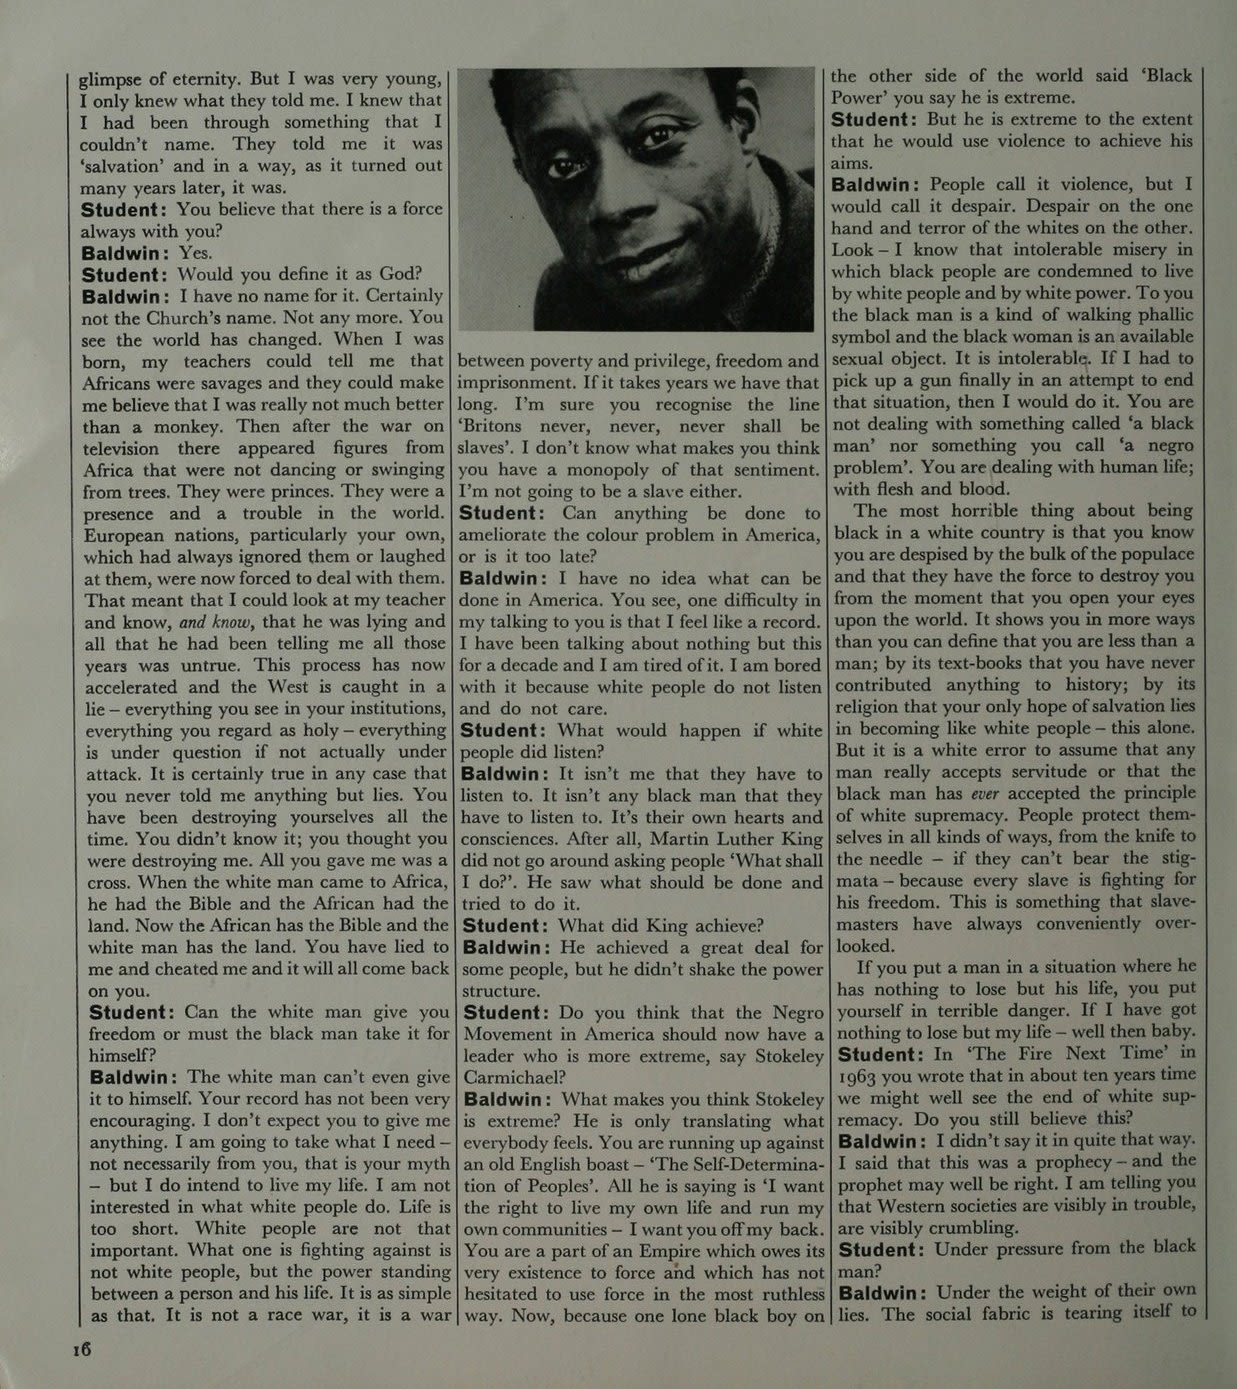 James Baldwin's interview with Richard Branson's Student Magazine